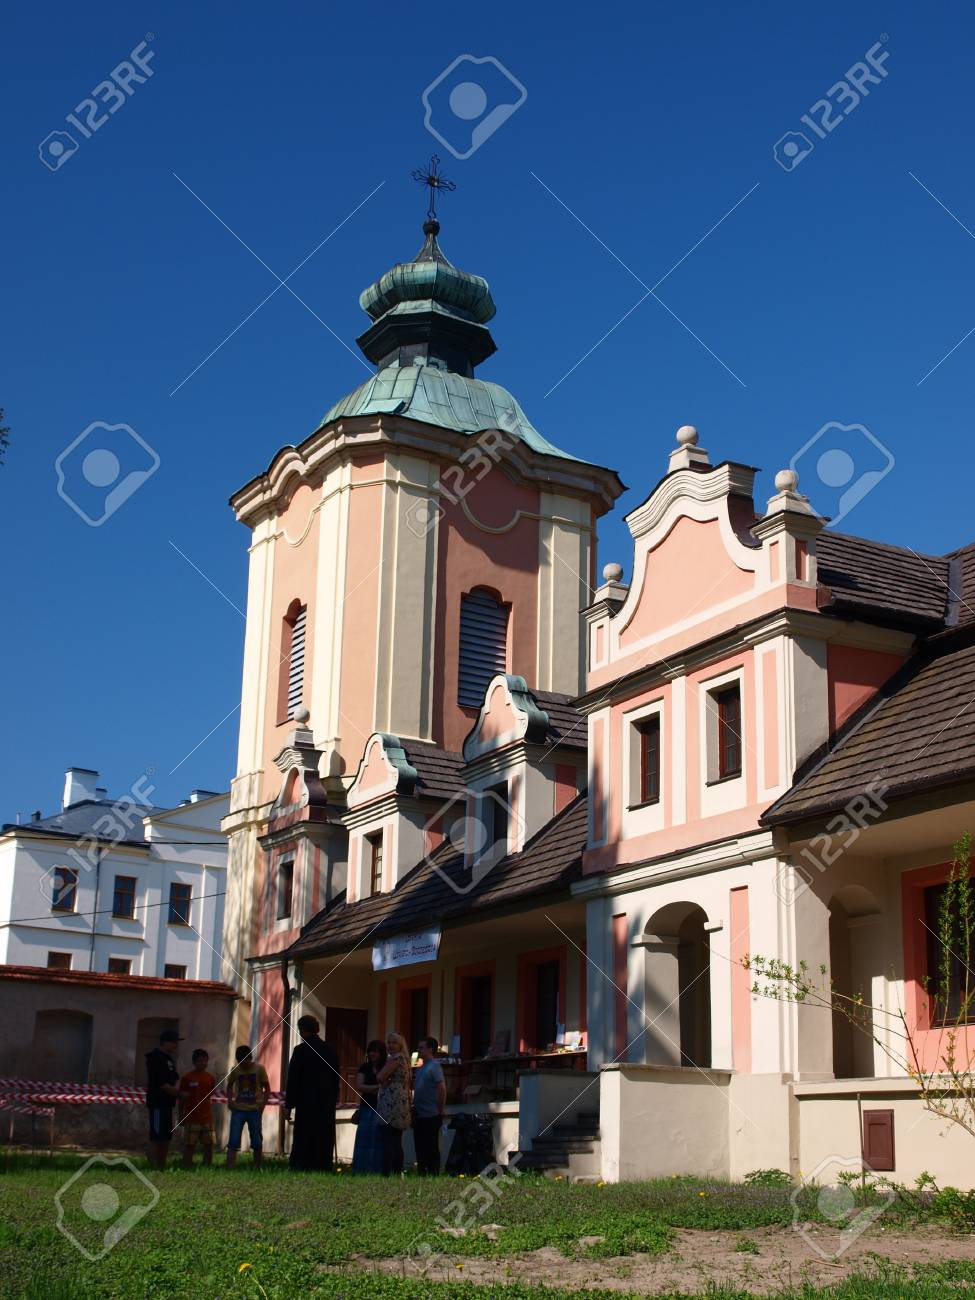 The post-benedictine monastery with the church of St  Michael The Archangel, Sandomierz, Poland, May 1st 2012 Stock Photo - 13512528